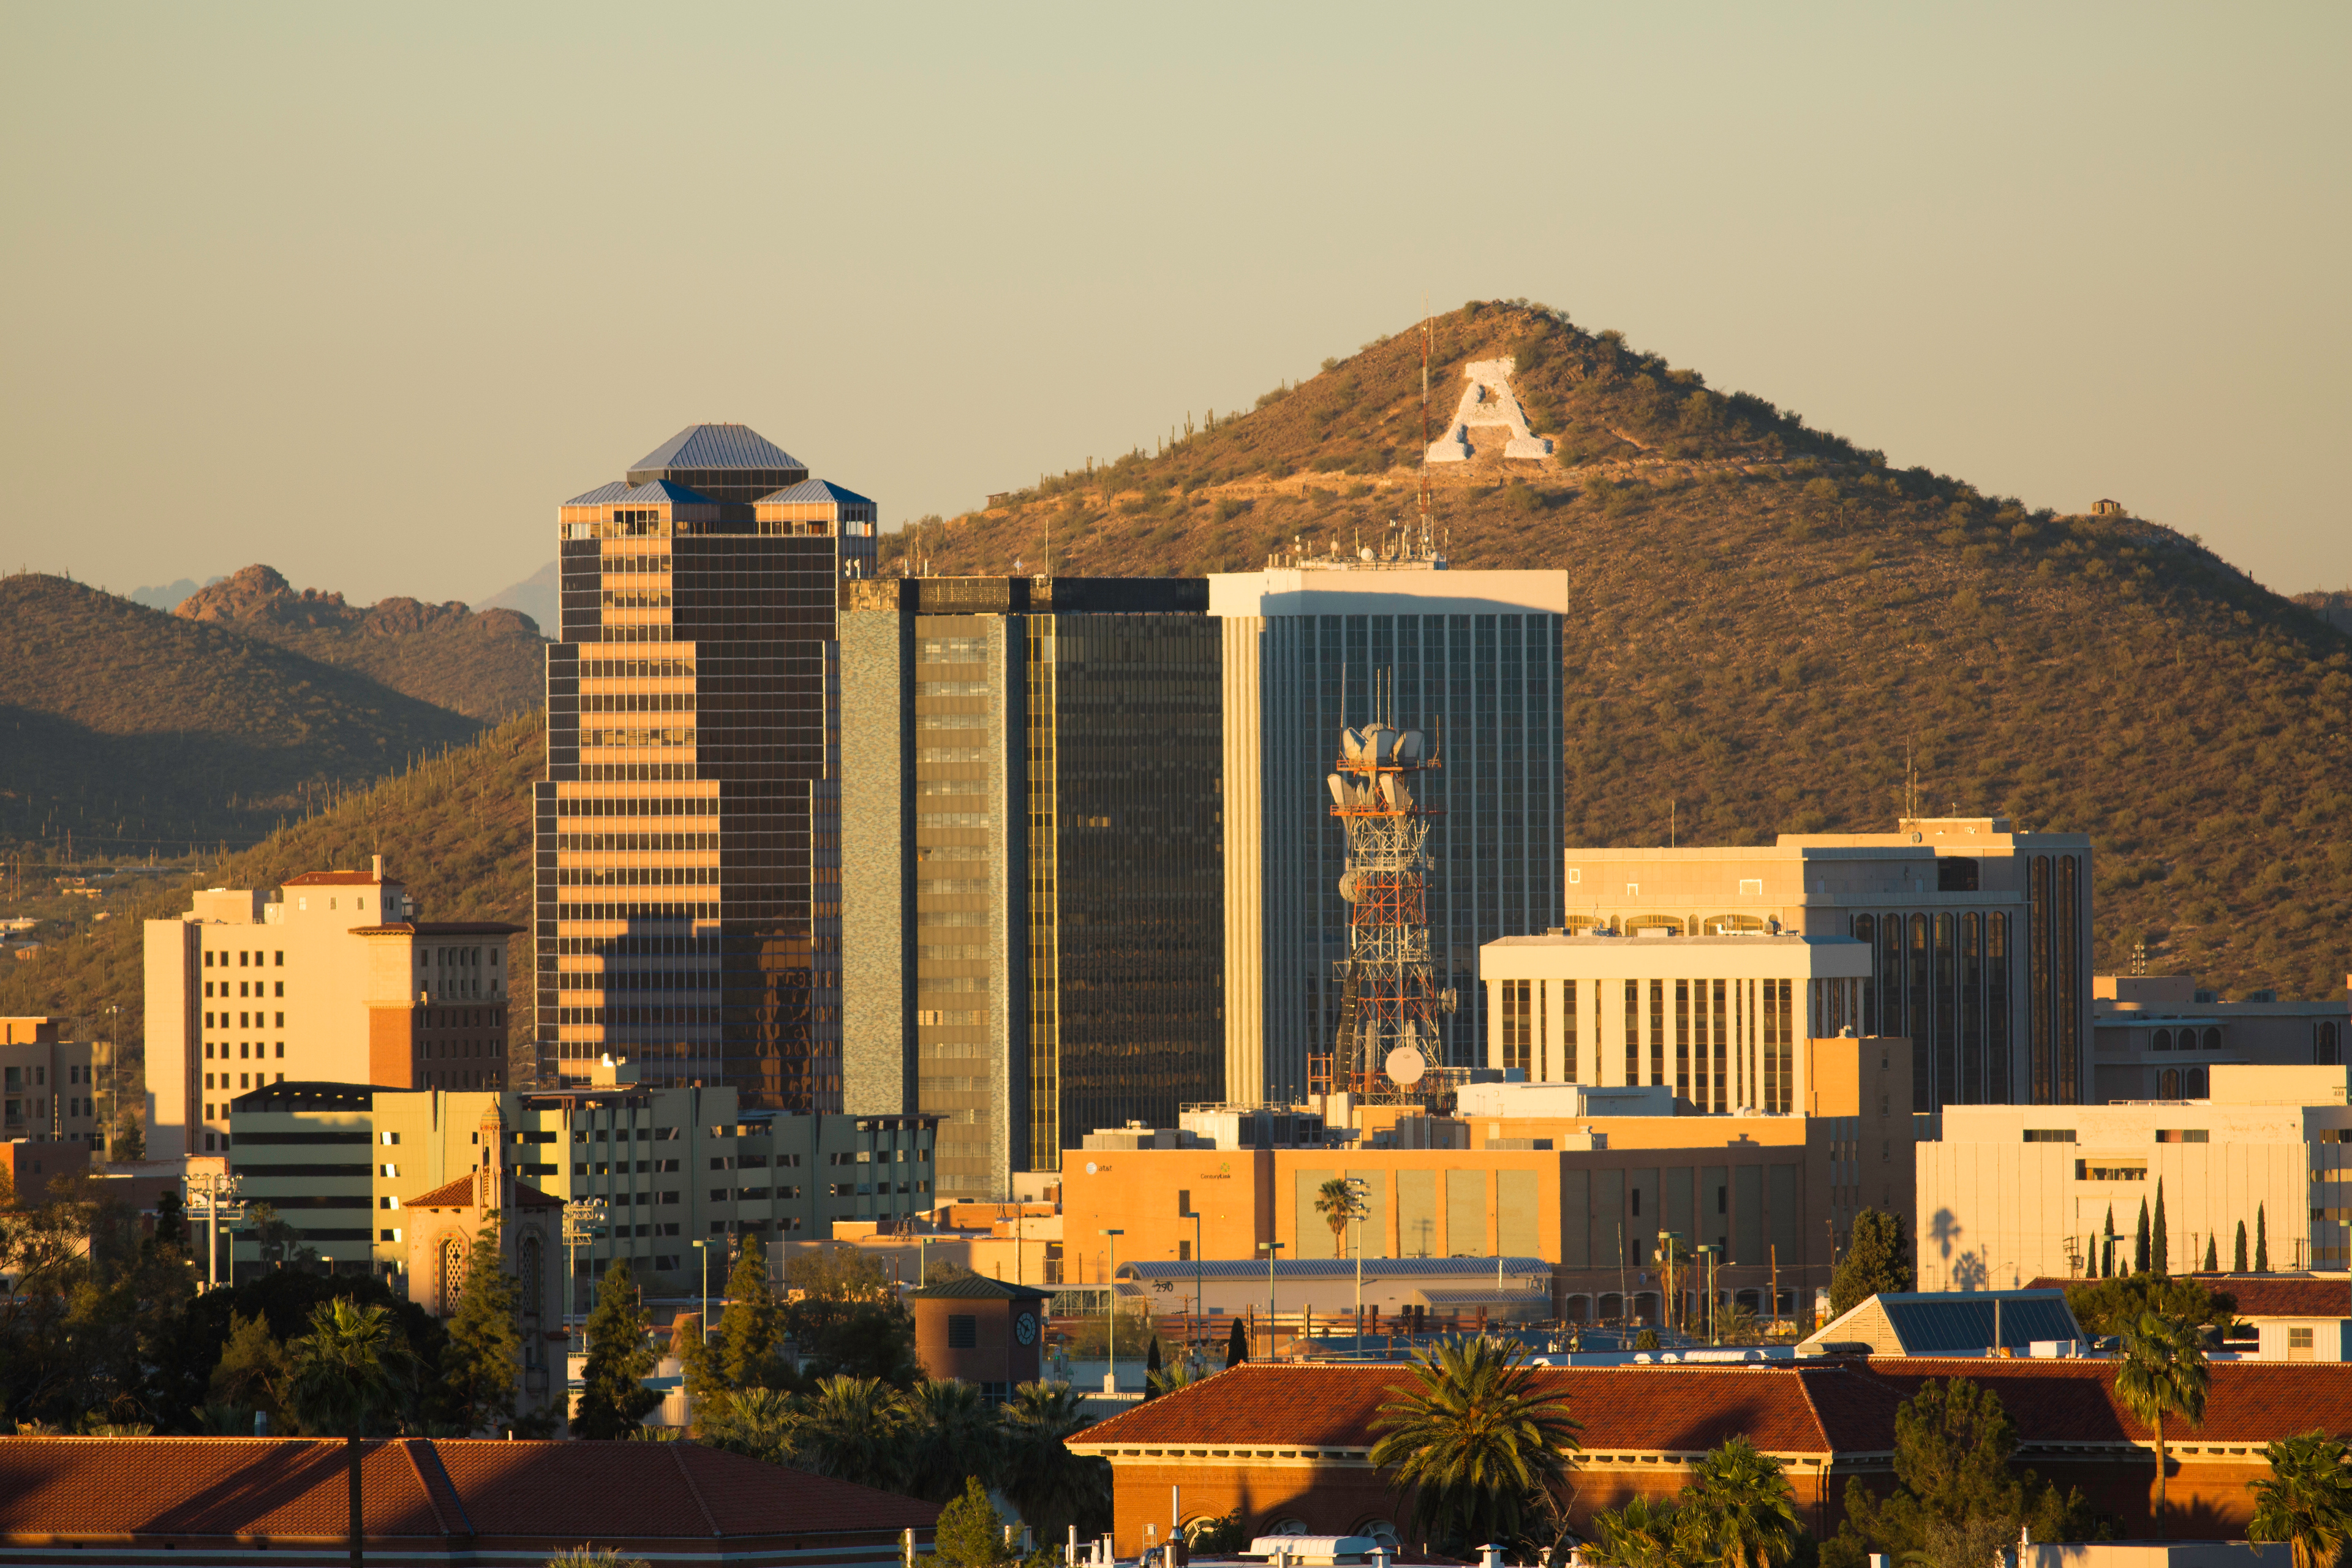 The Tucson skyline with Sentinel Peak in the background.